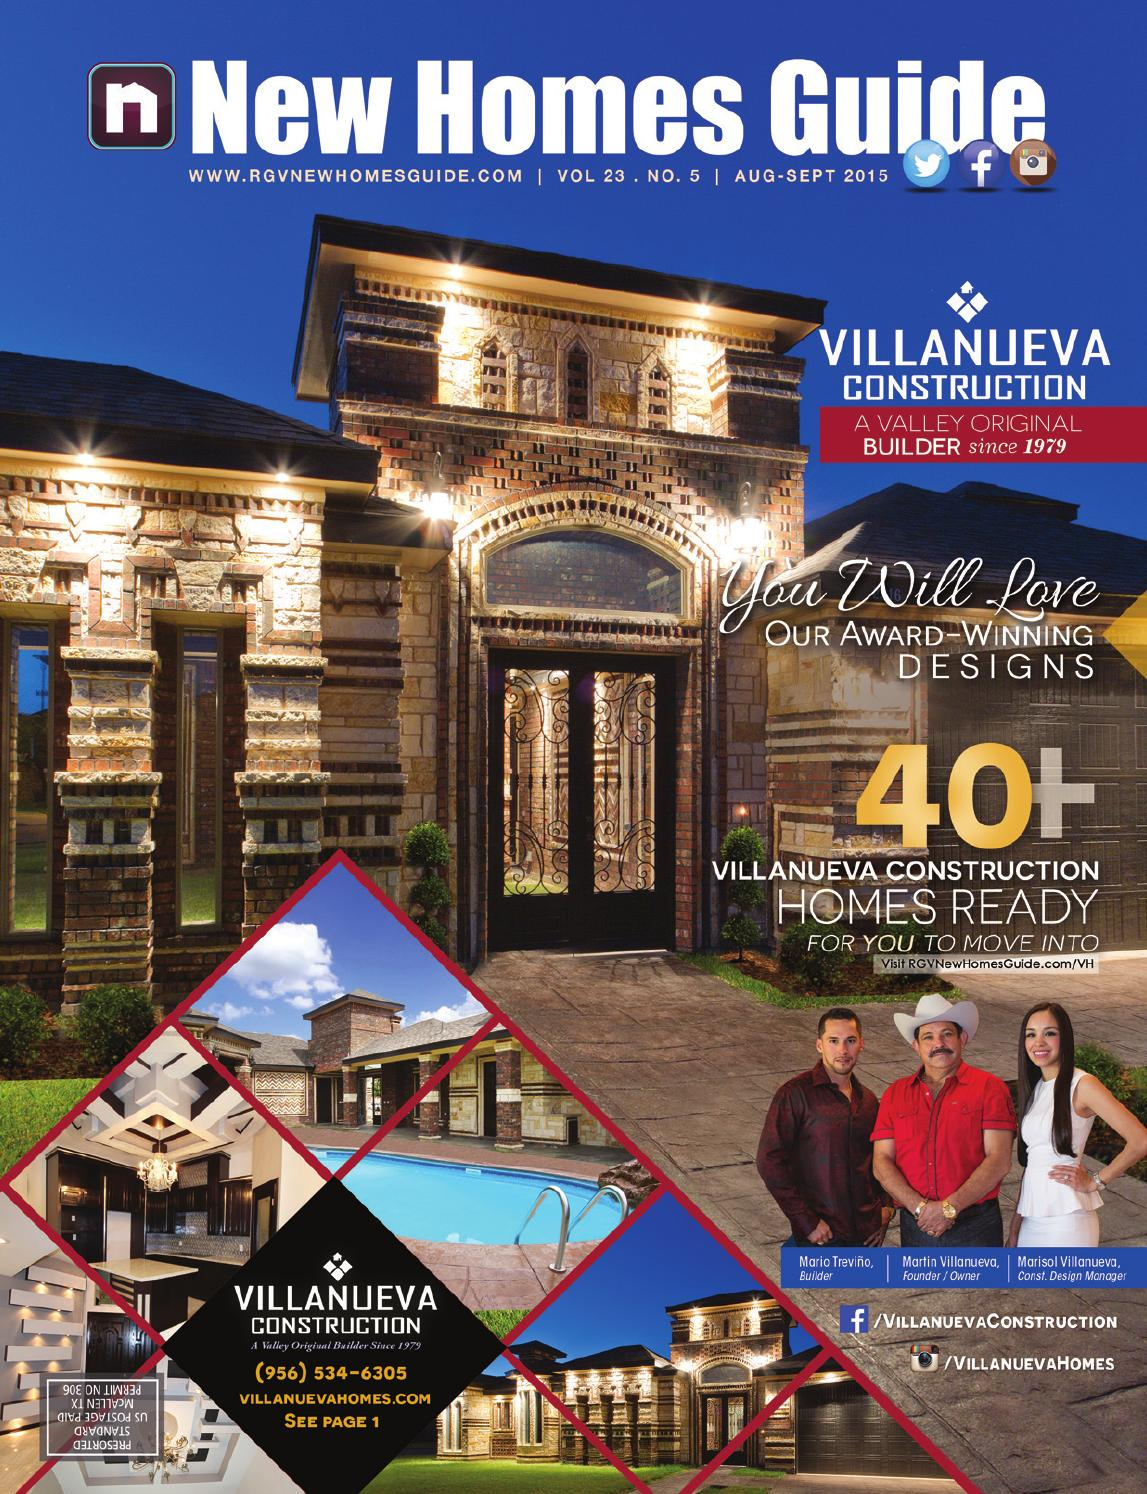 Rgv new homes guide vol 23 no 5 august 2015 september for Home builders guide